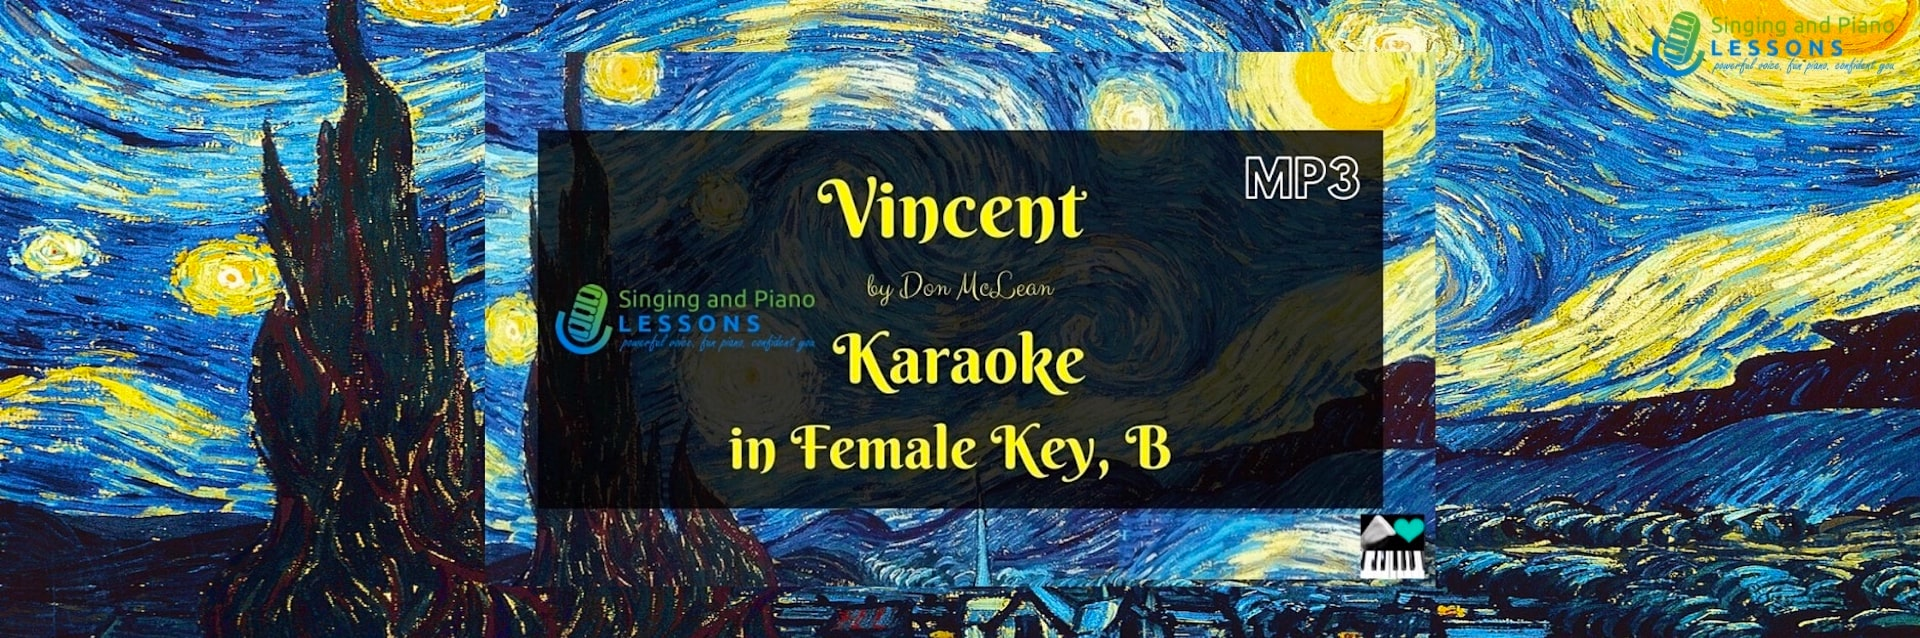 Vincent, Don McLean, Karaoke in Female Key B/ Baritones for Males